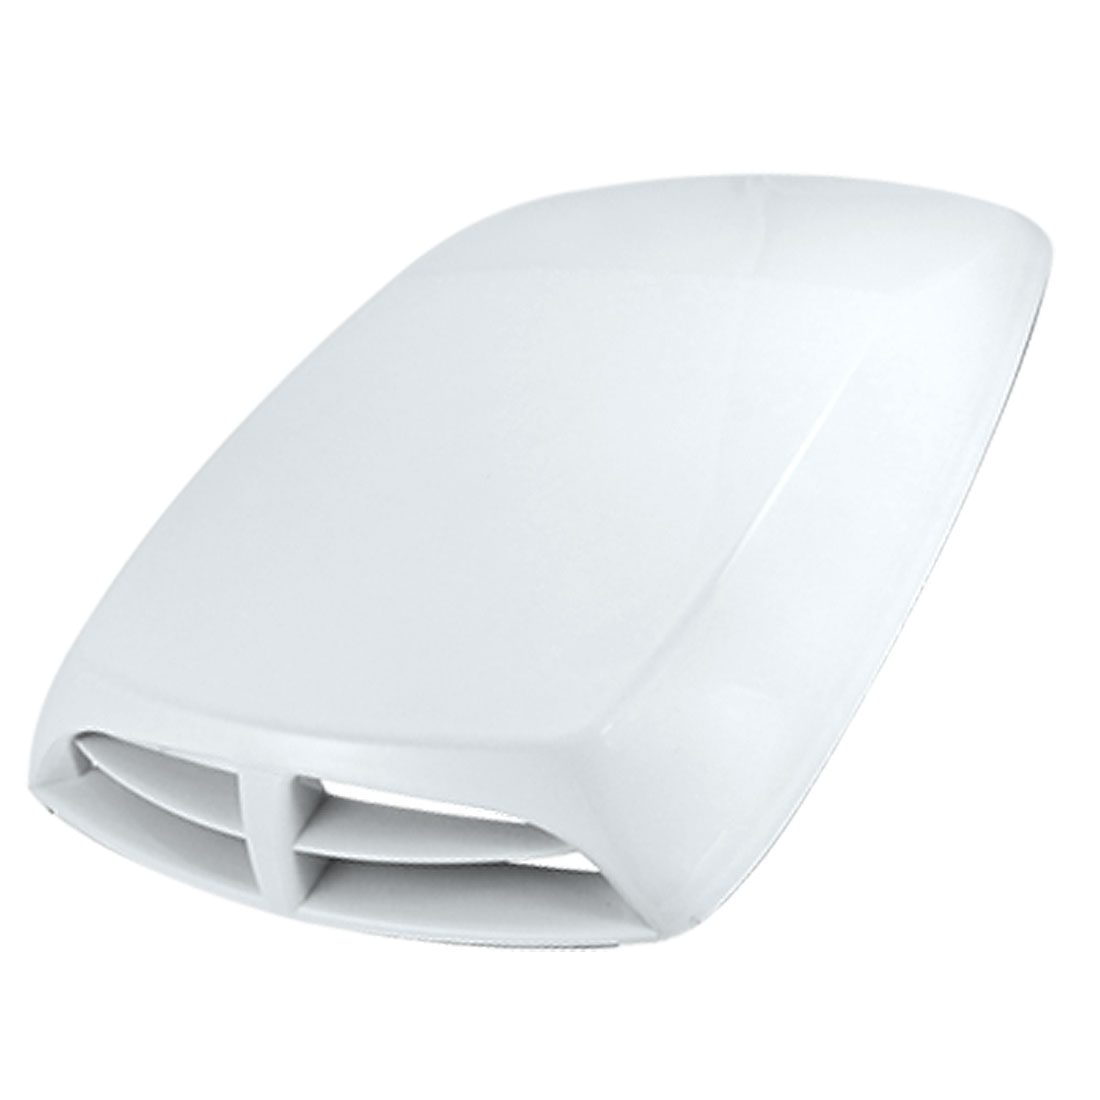 Car Vehicle Air Flow Vent Hood Scoop Decoration White